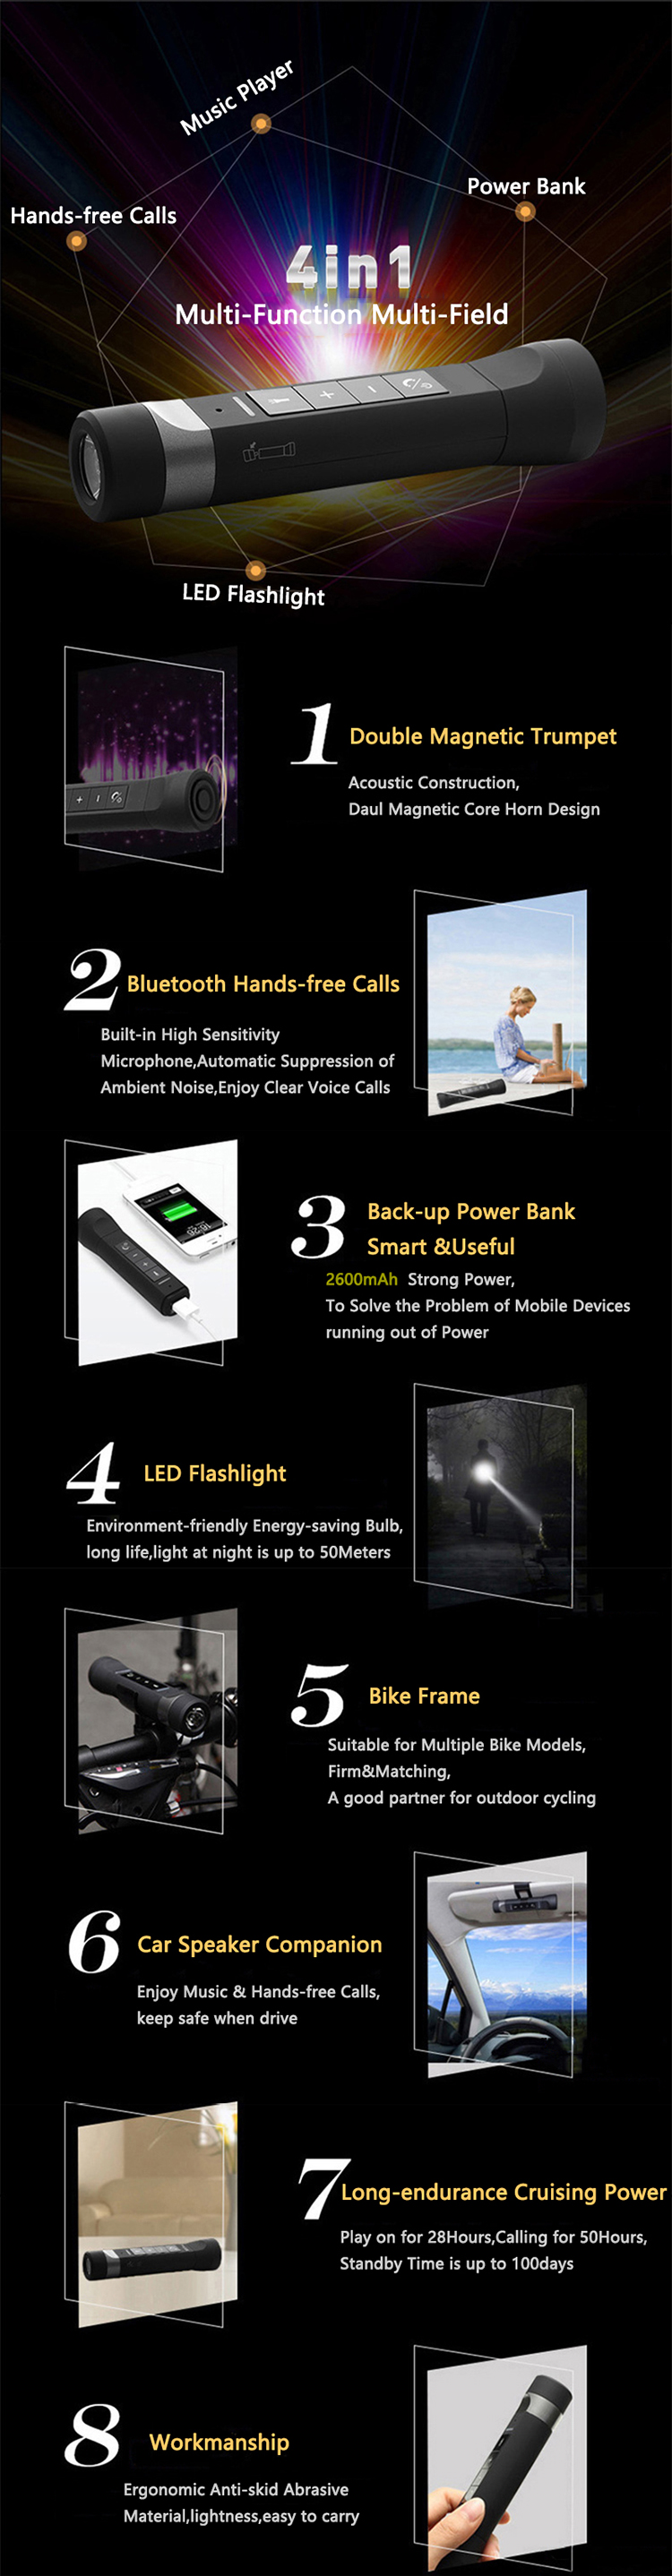 hand torch Outdoor Portable 4in1 Power Bank Wireless Speaker 2600mAh Led Flashlight Torch